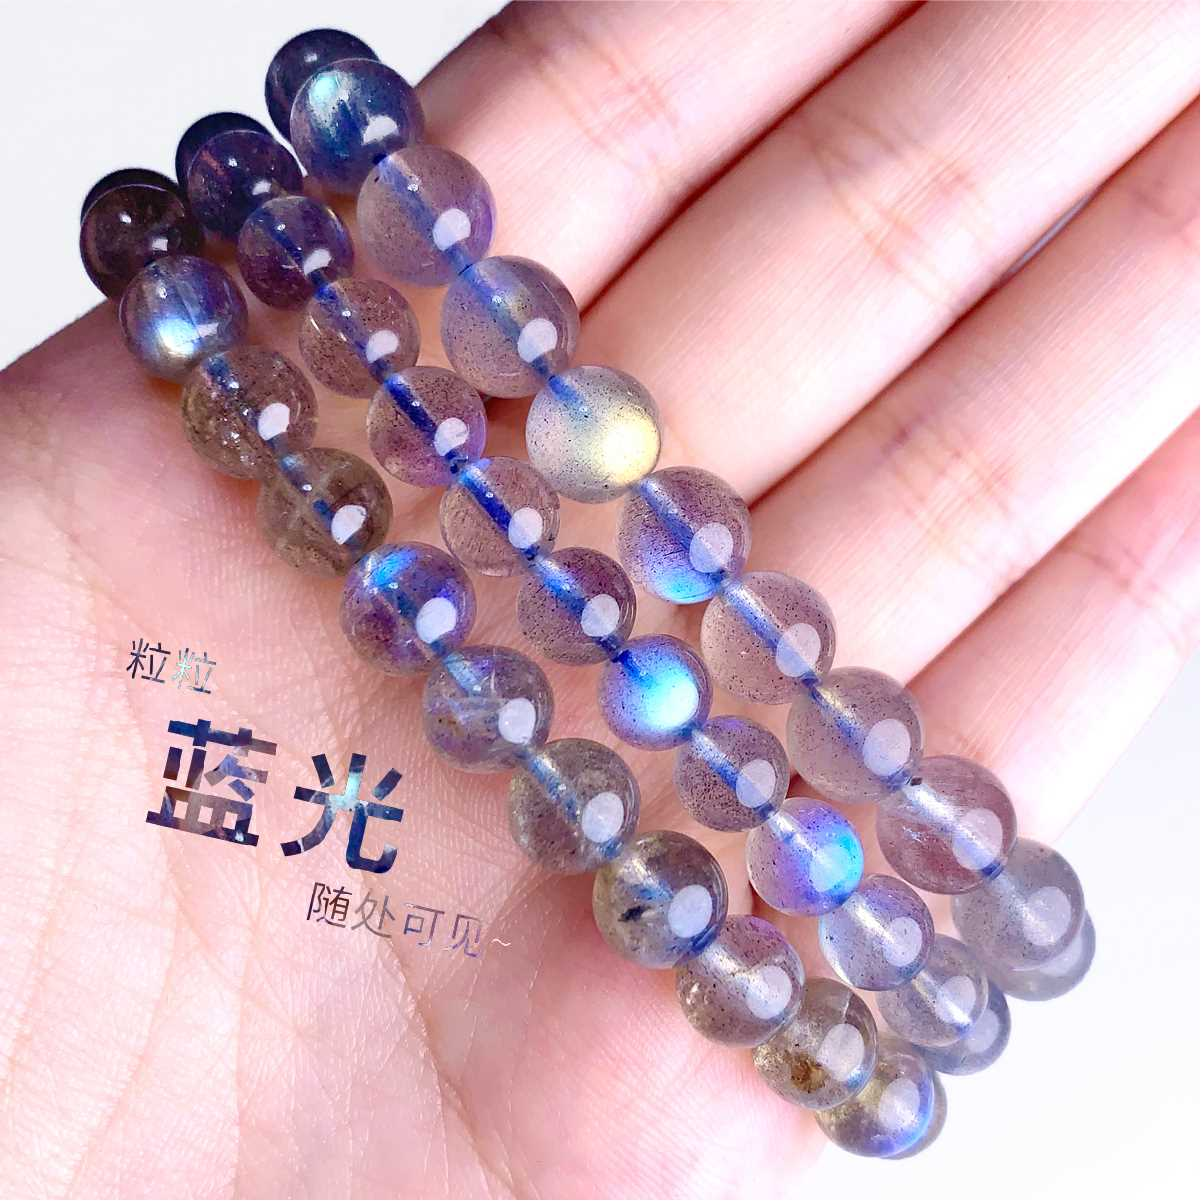 High grade chain ice strong blue light / grey moonlight / elongated stone natural crystal jewelry bracelet Jewelry Gift orange